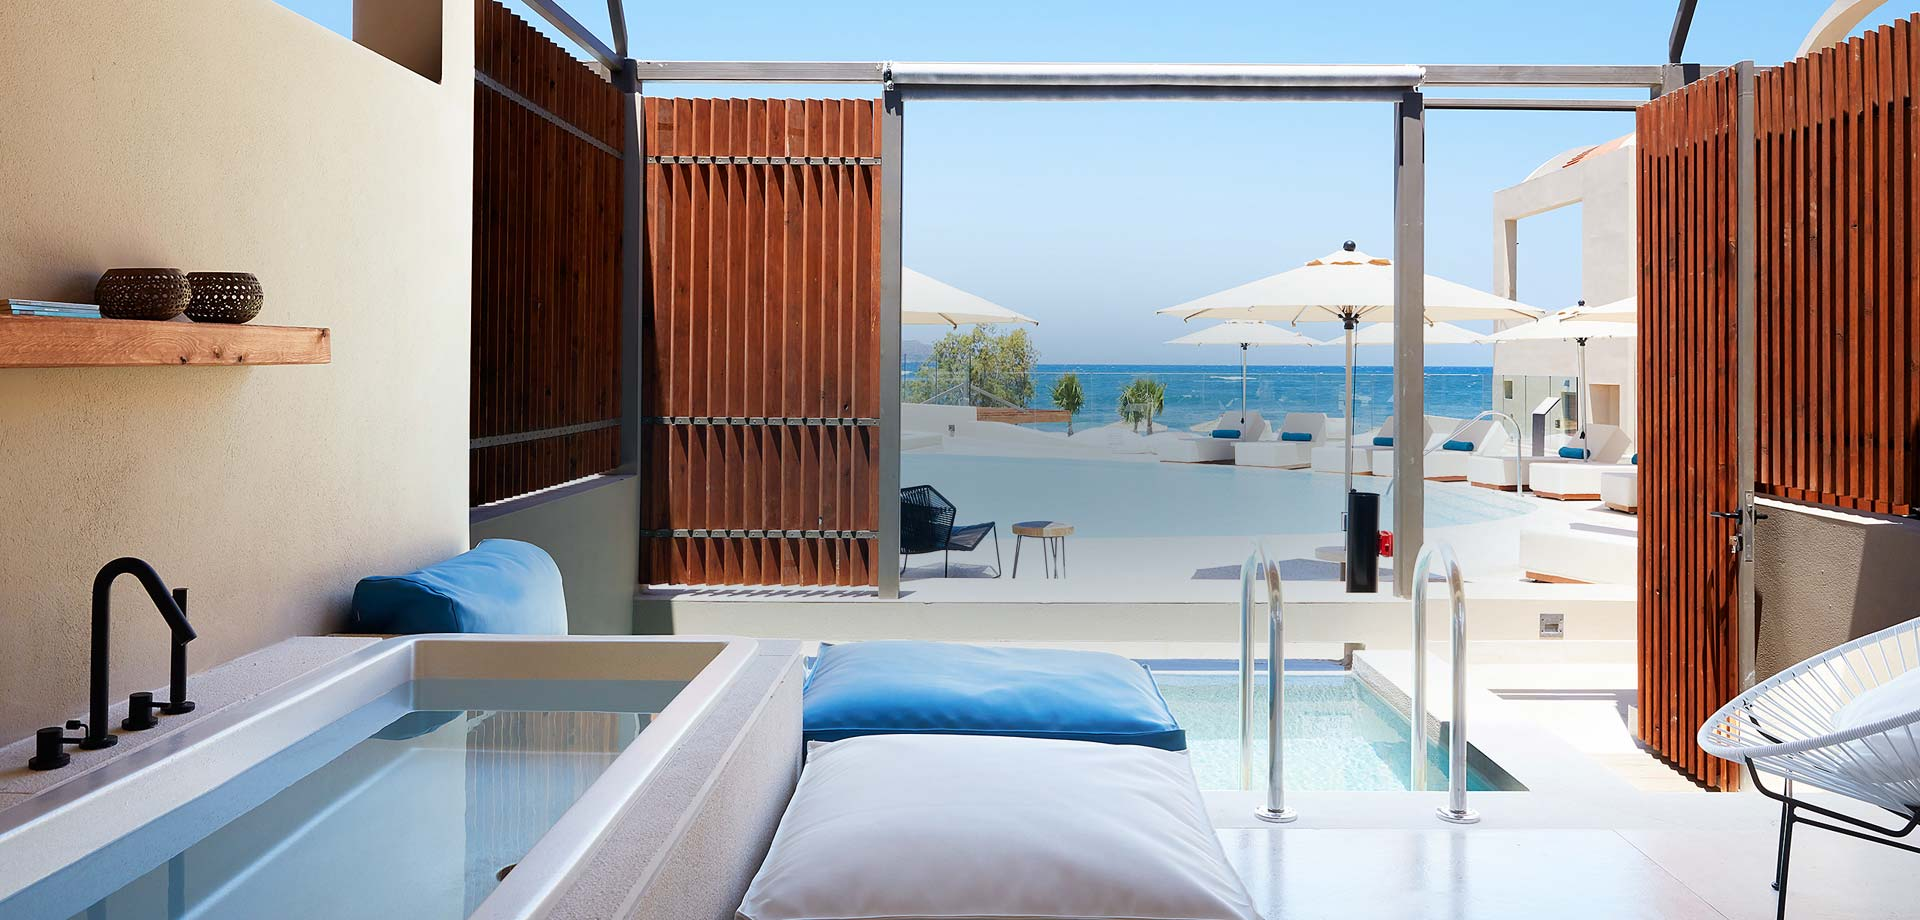 DOMES NORUZ CHANIA - luxury boutique hotel in Crete